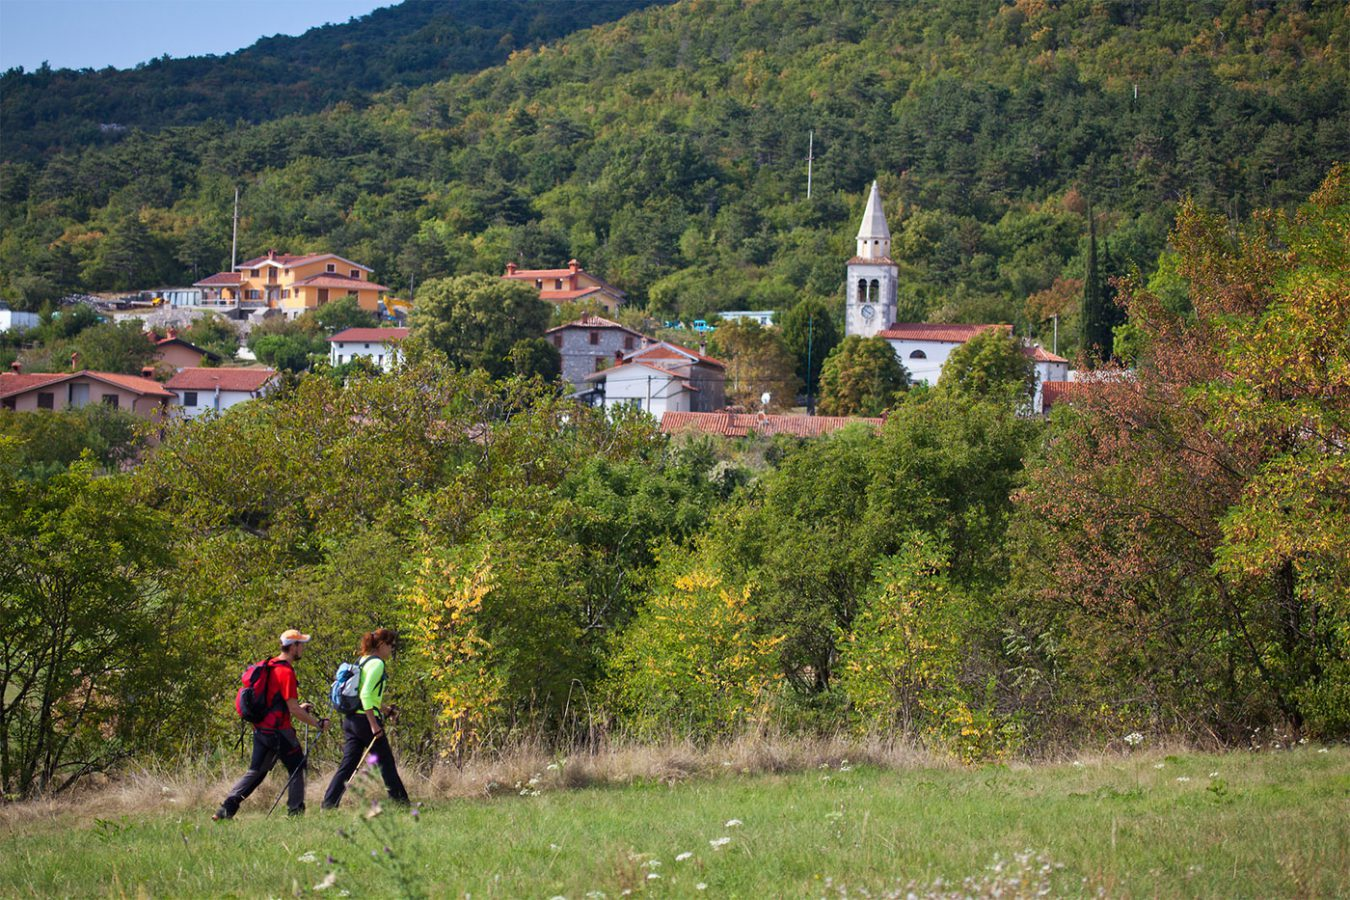 Active Holidays Hiking Asa Residence Private Villa Kras Slovenia